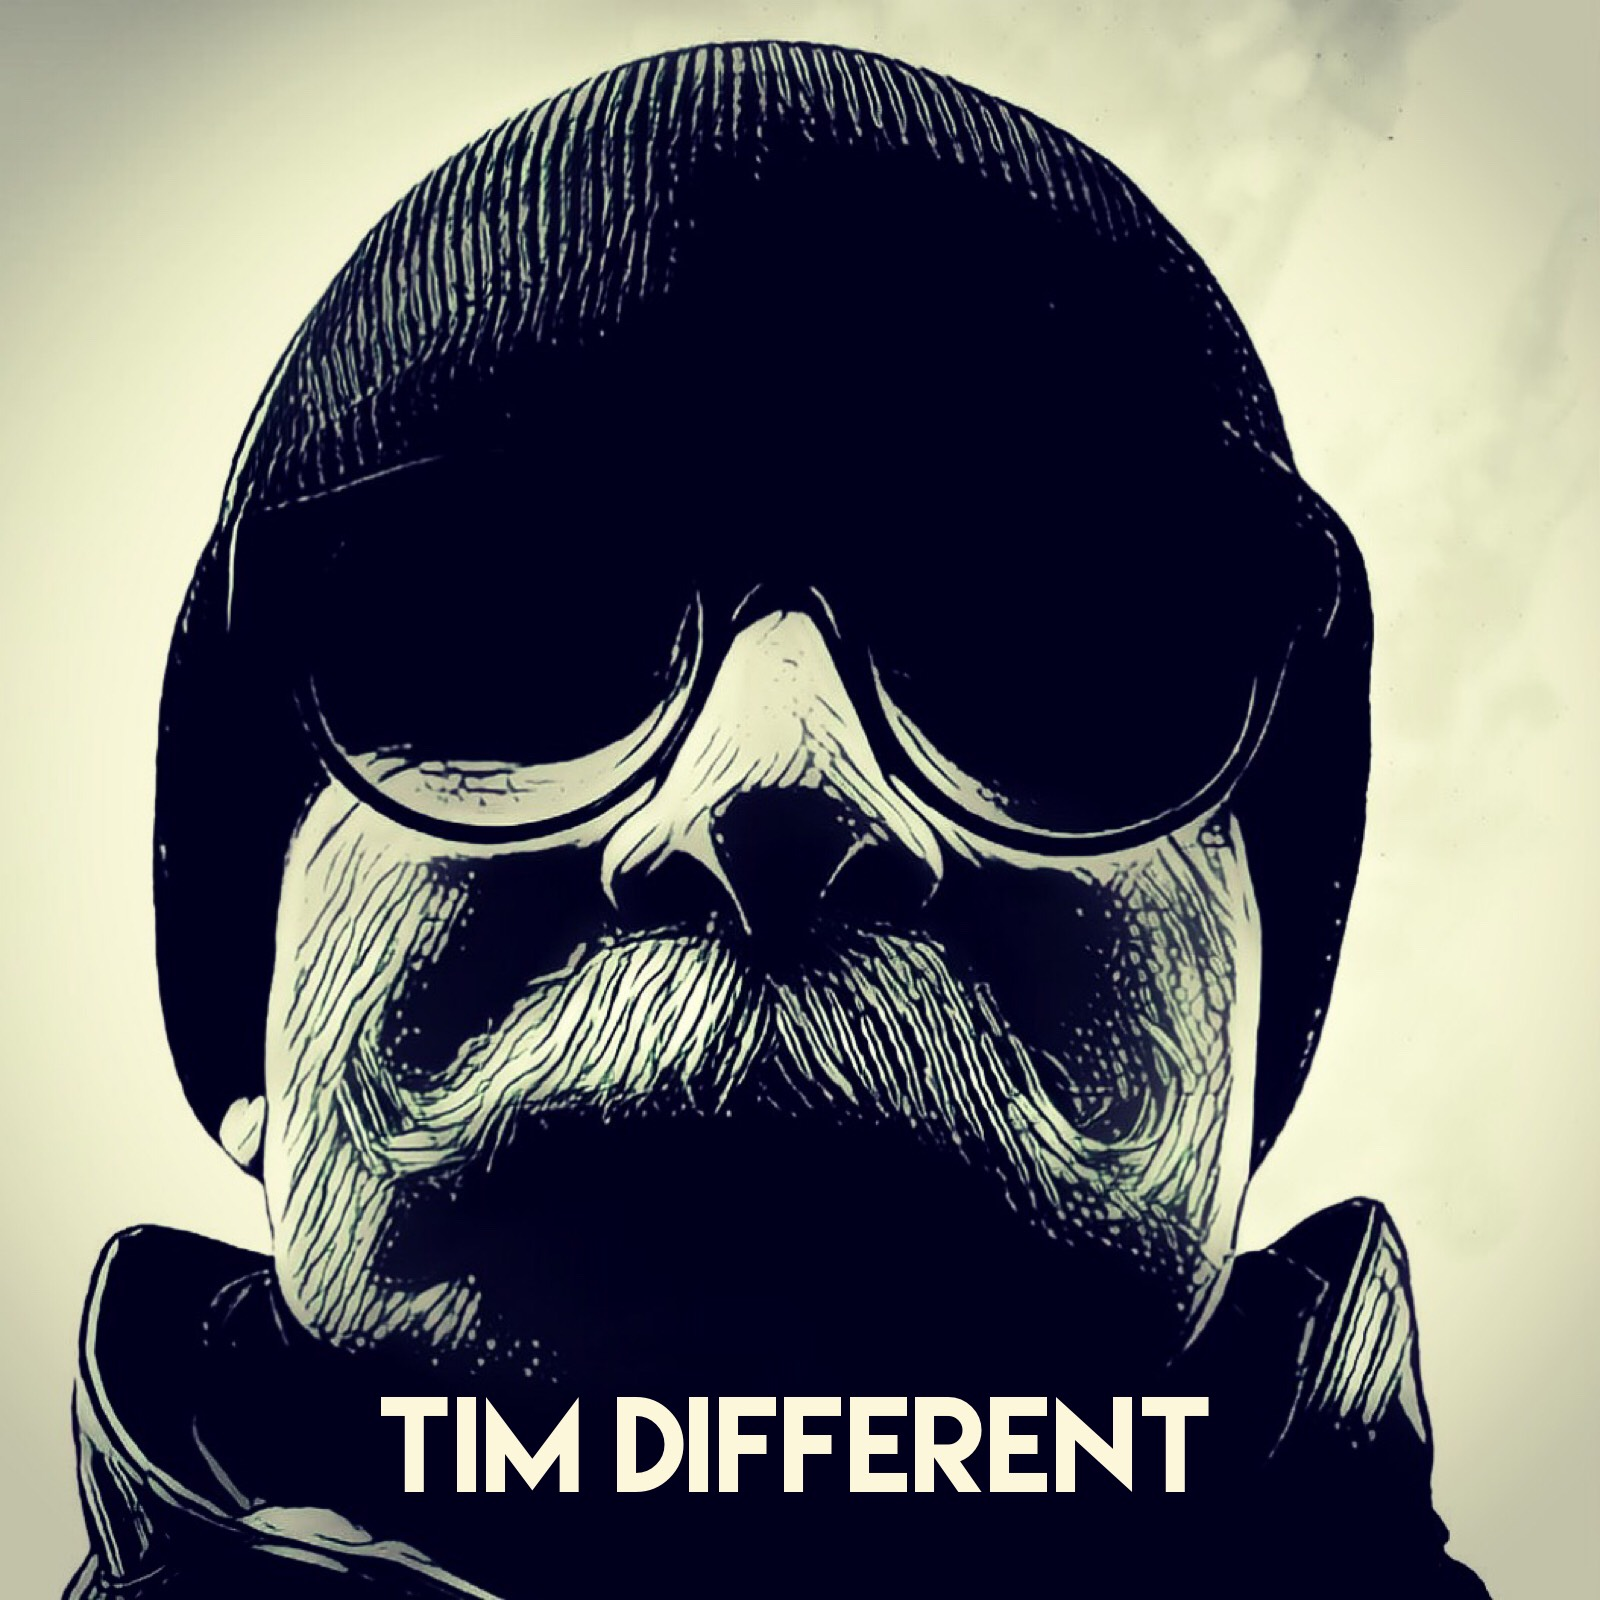 Tim Different